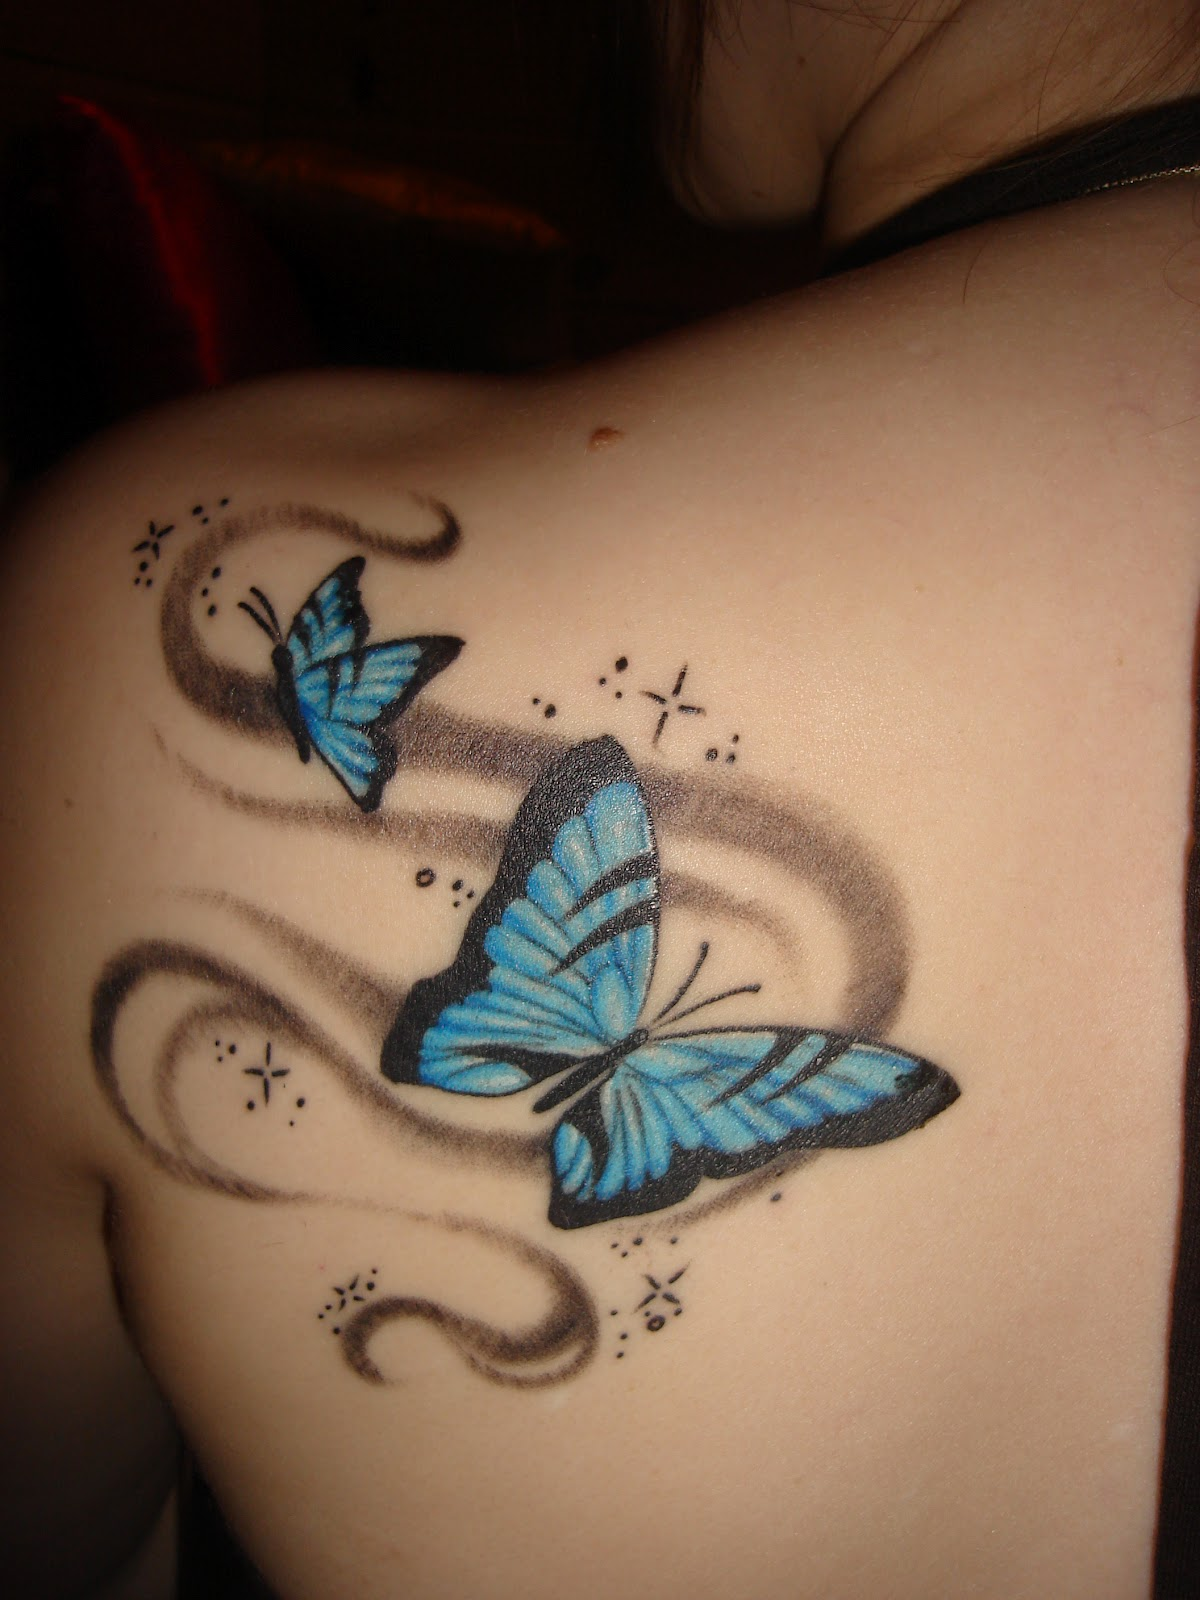 More about → Butterfly Tattoos